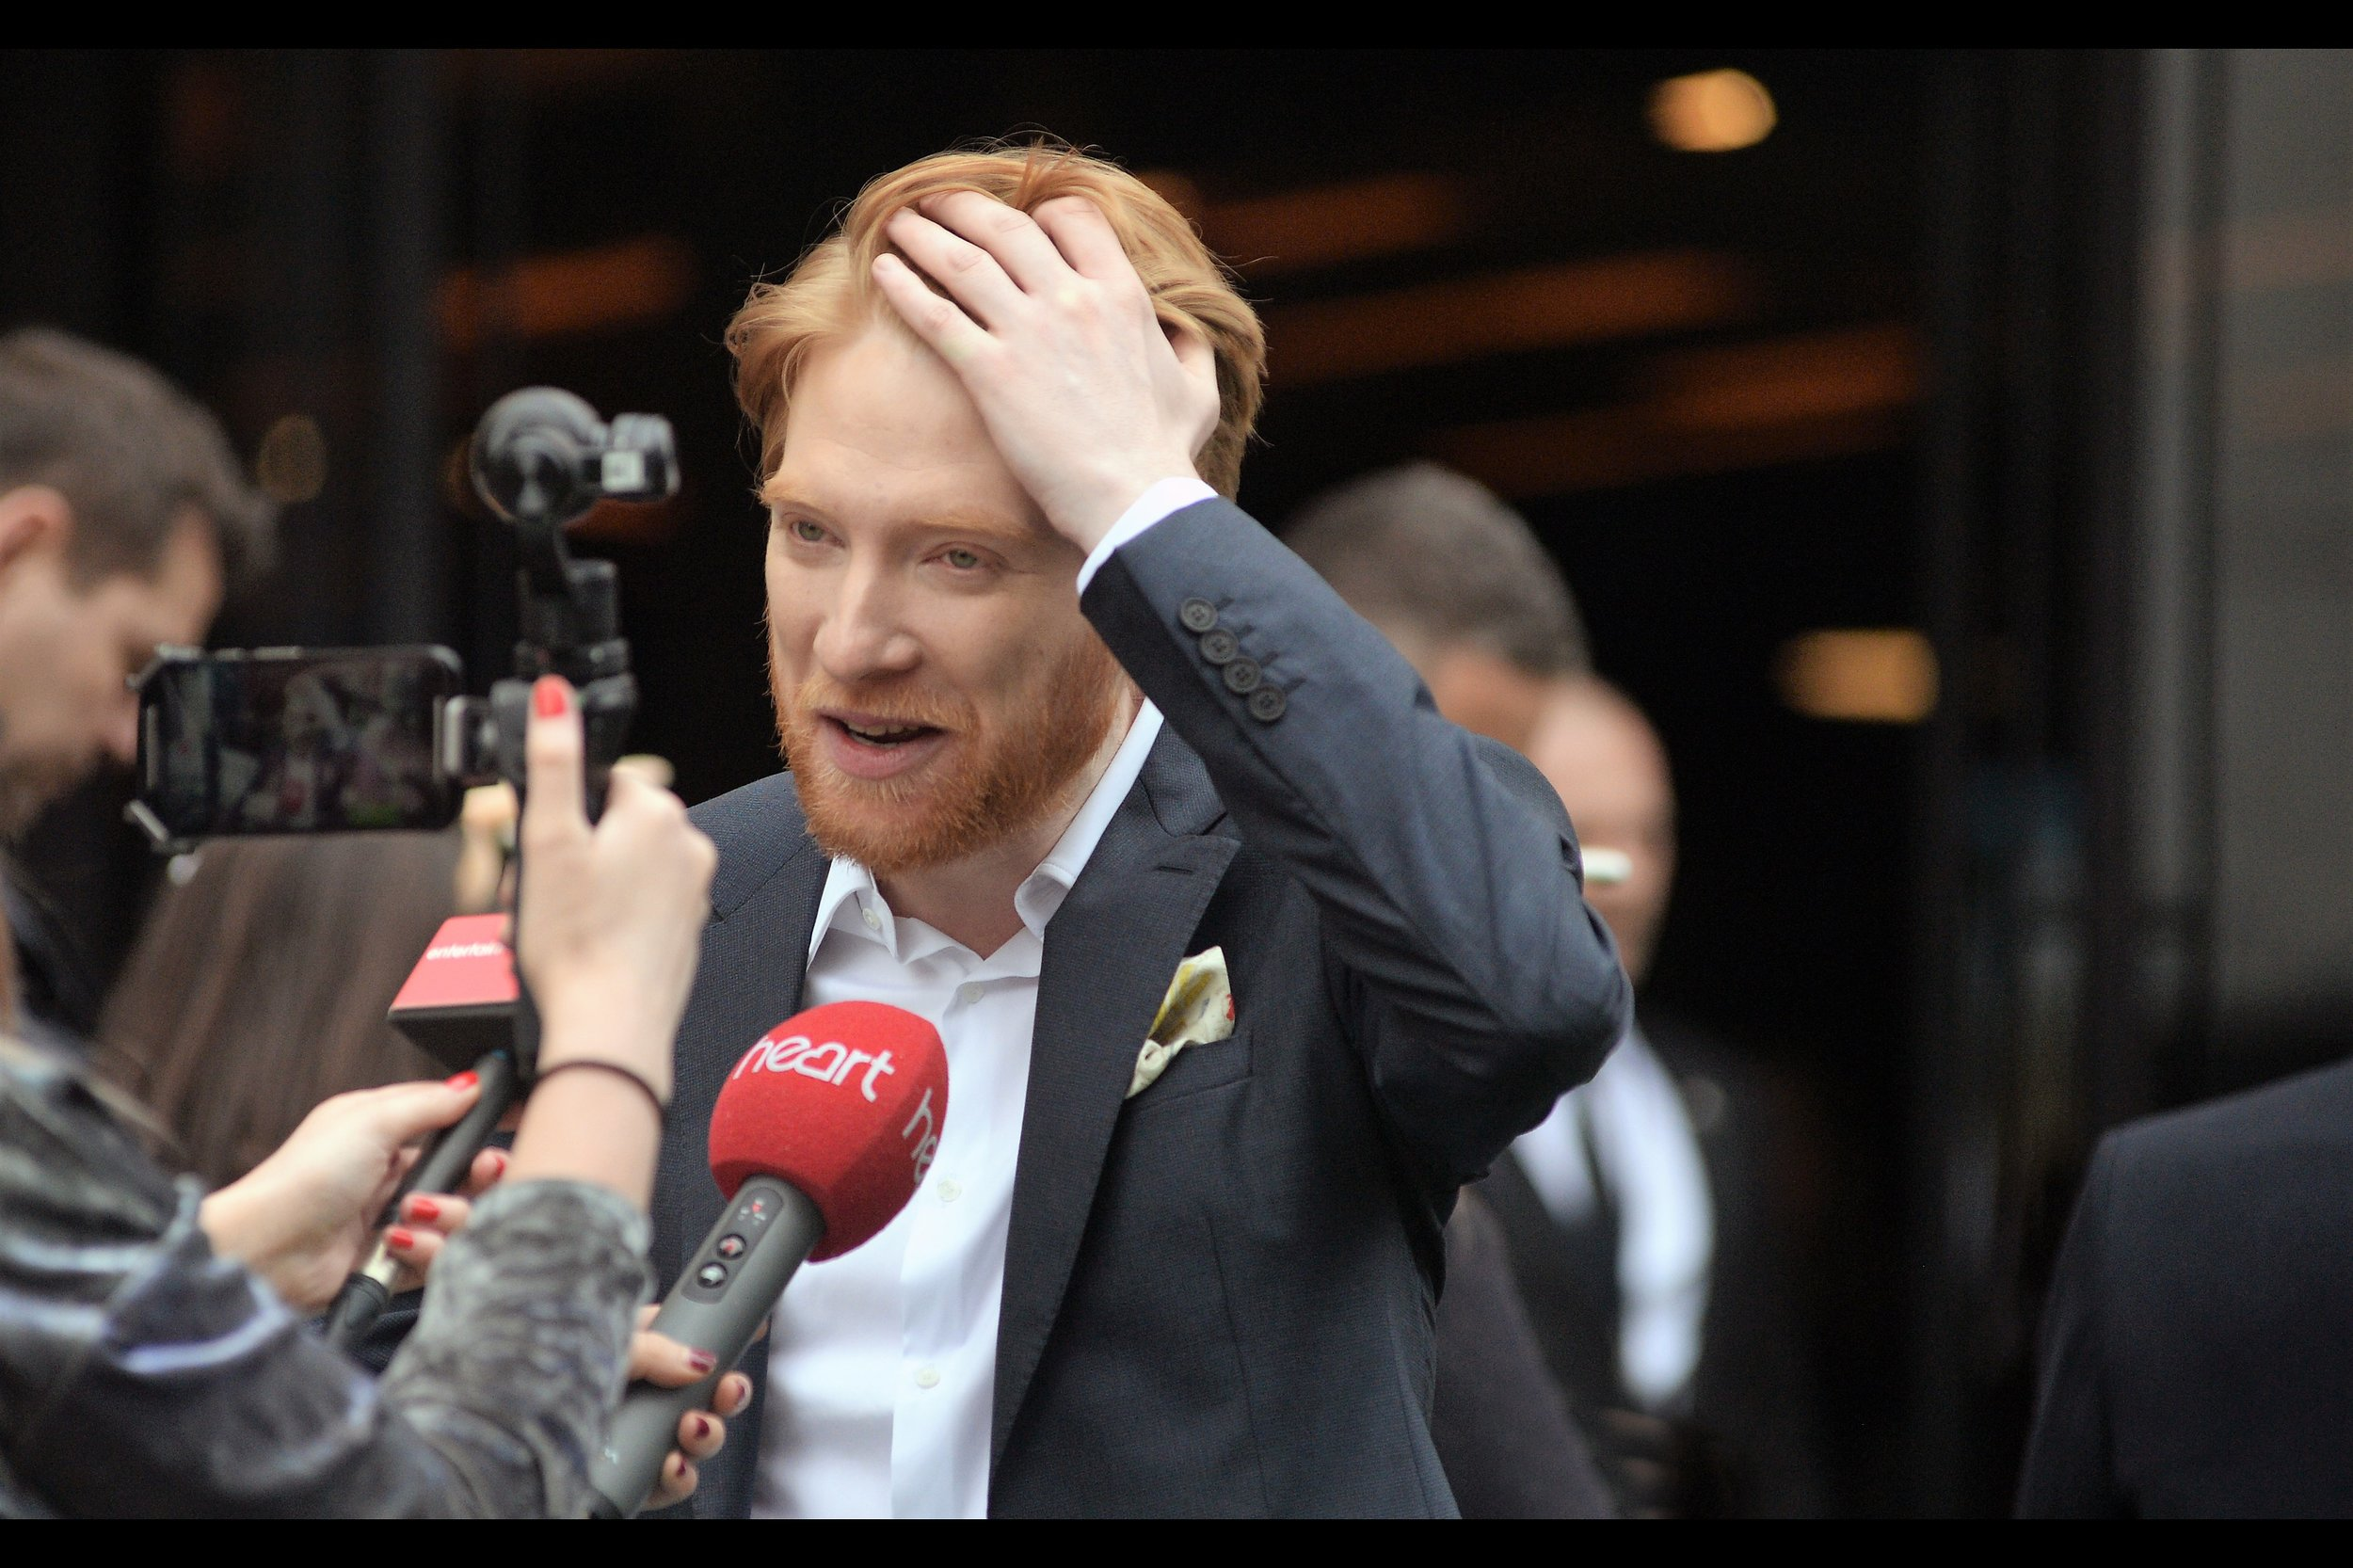 """""""I know, it's confusing to me as well""""  - depending on what part of the crowd you find most authoritative, Domhnall Gleeson's first name might be pronounced """"Doe-Nuhh"""", meaning close to half the letters in his name are silent or absent from the pronounciation?"""